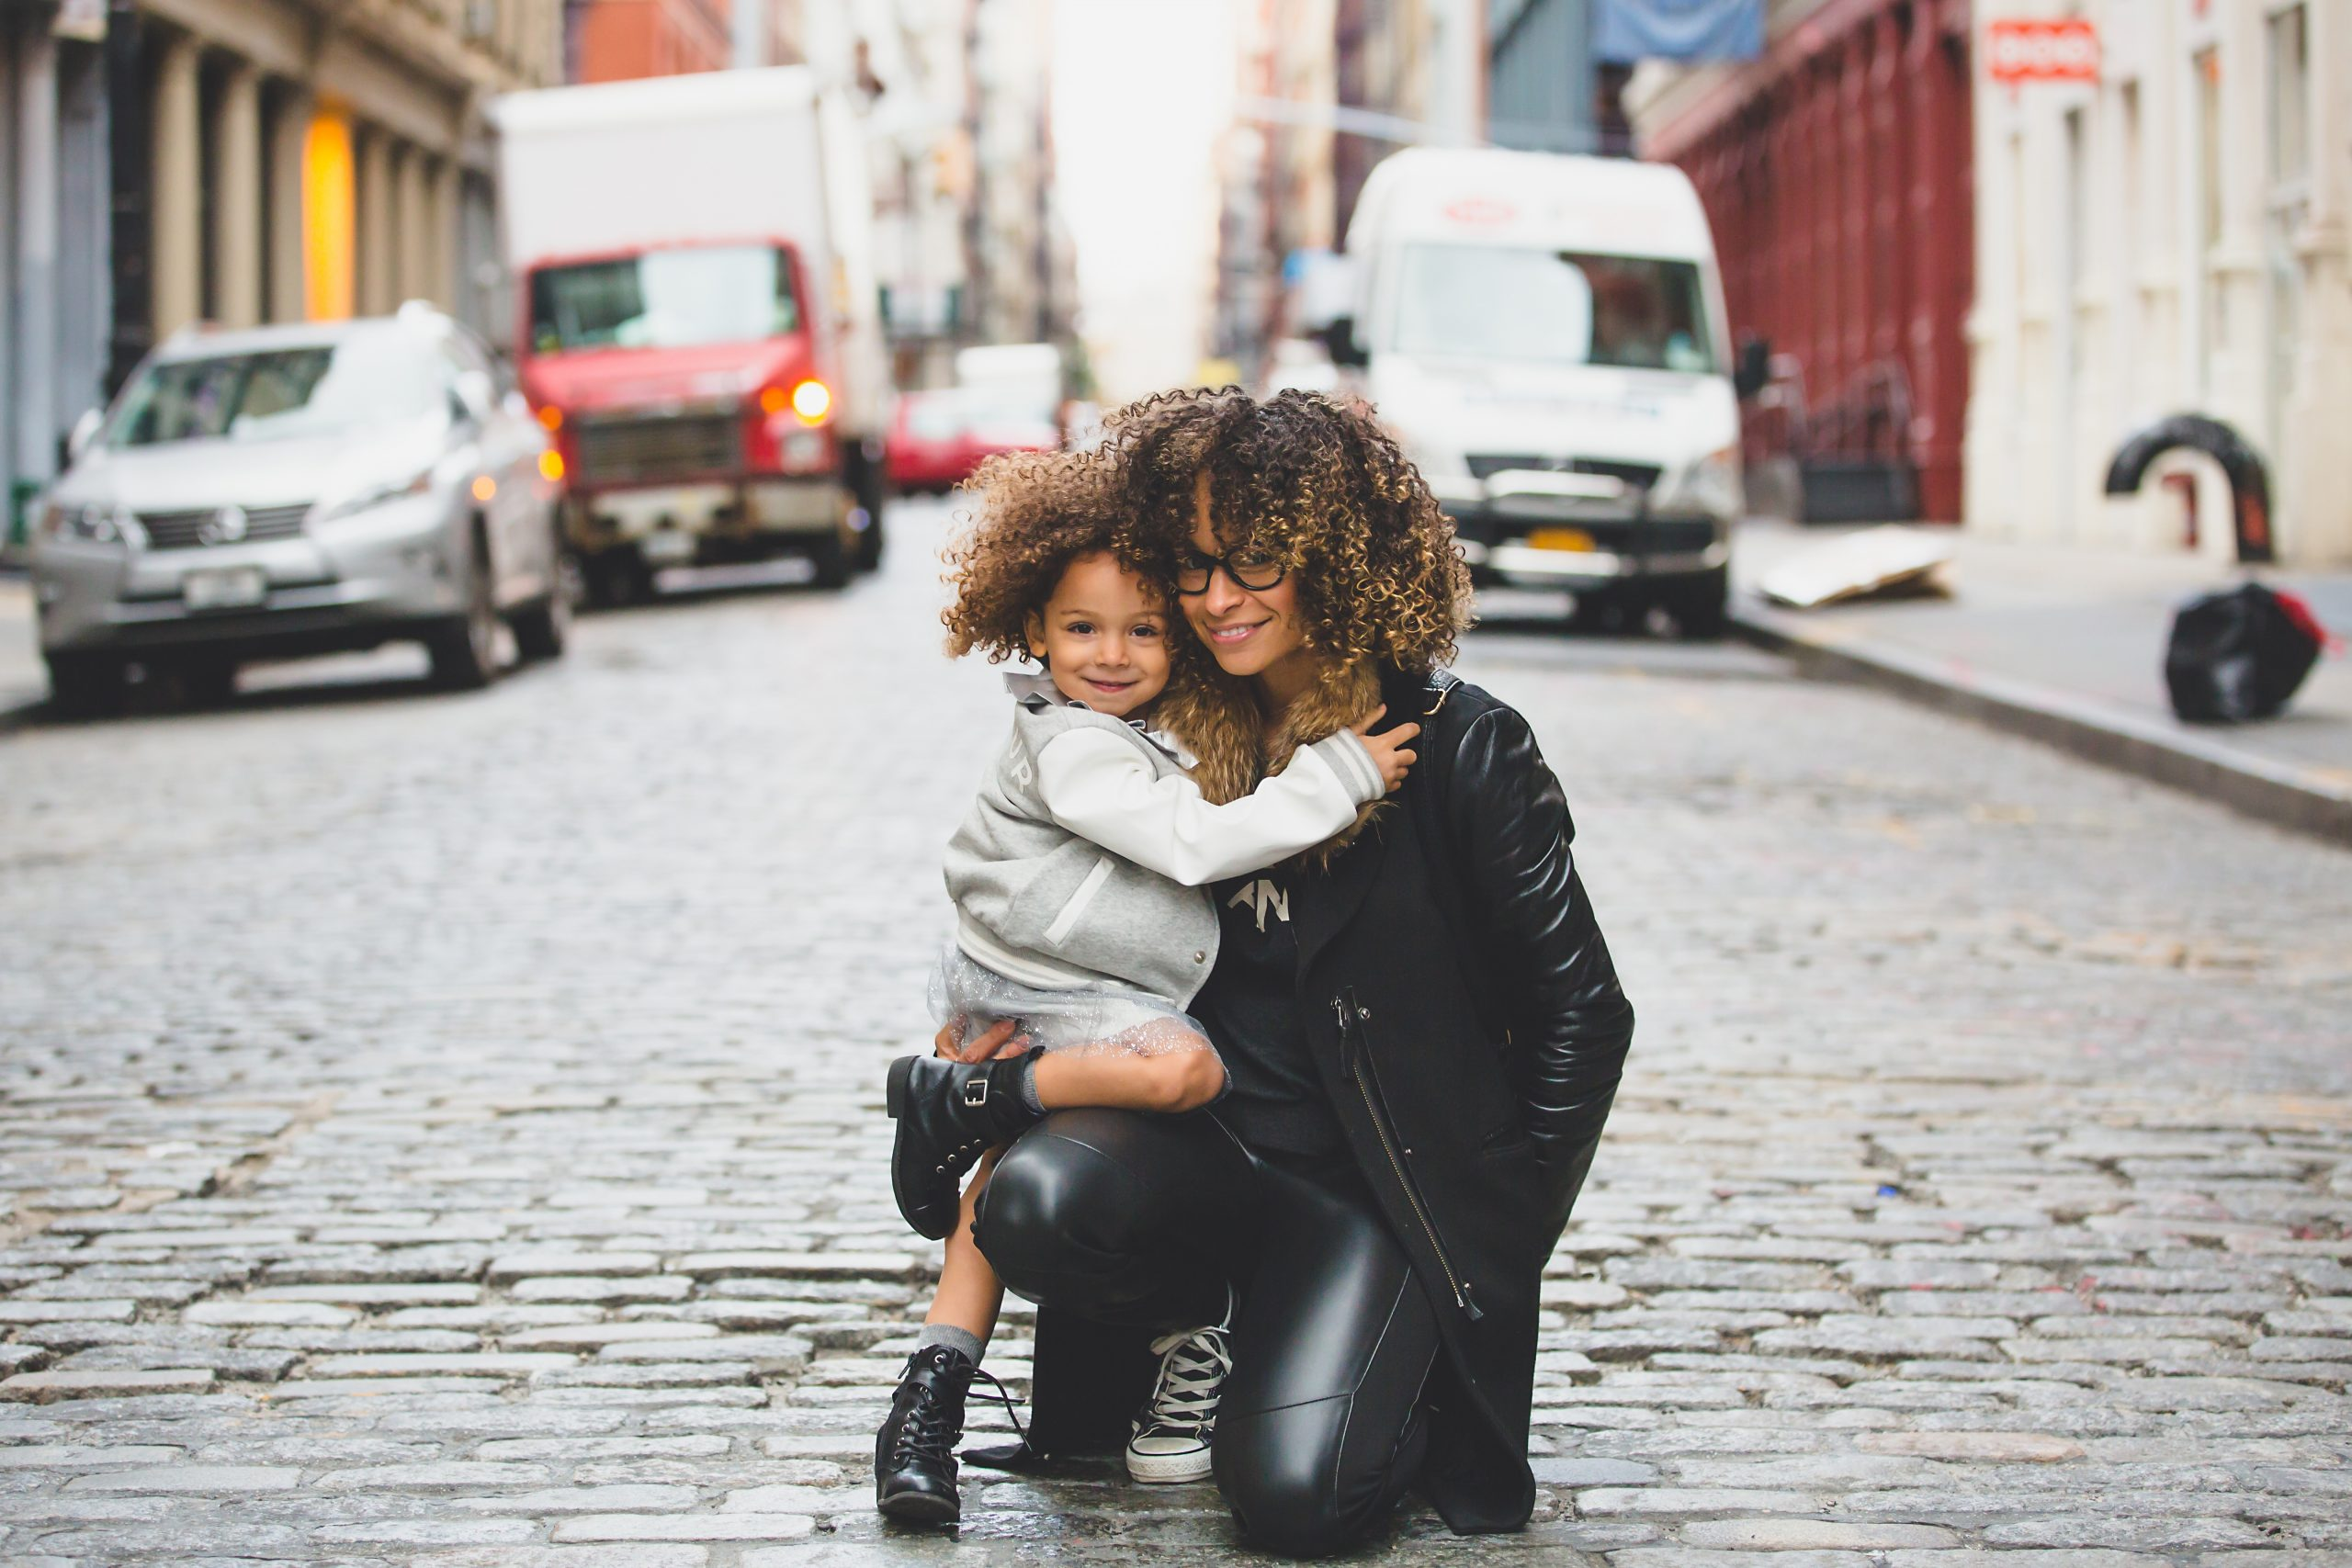 Mother and child hugging showing positive parenting and conscious relationships